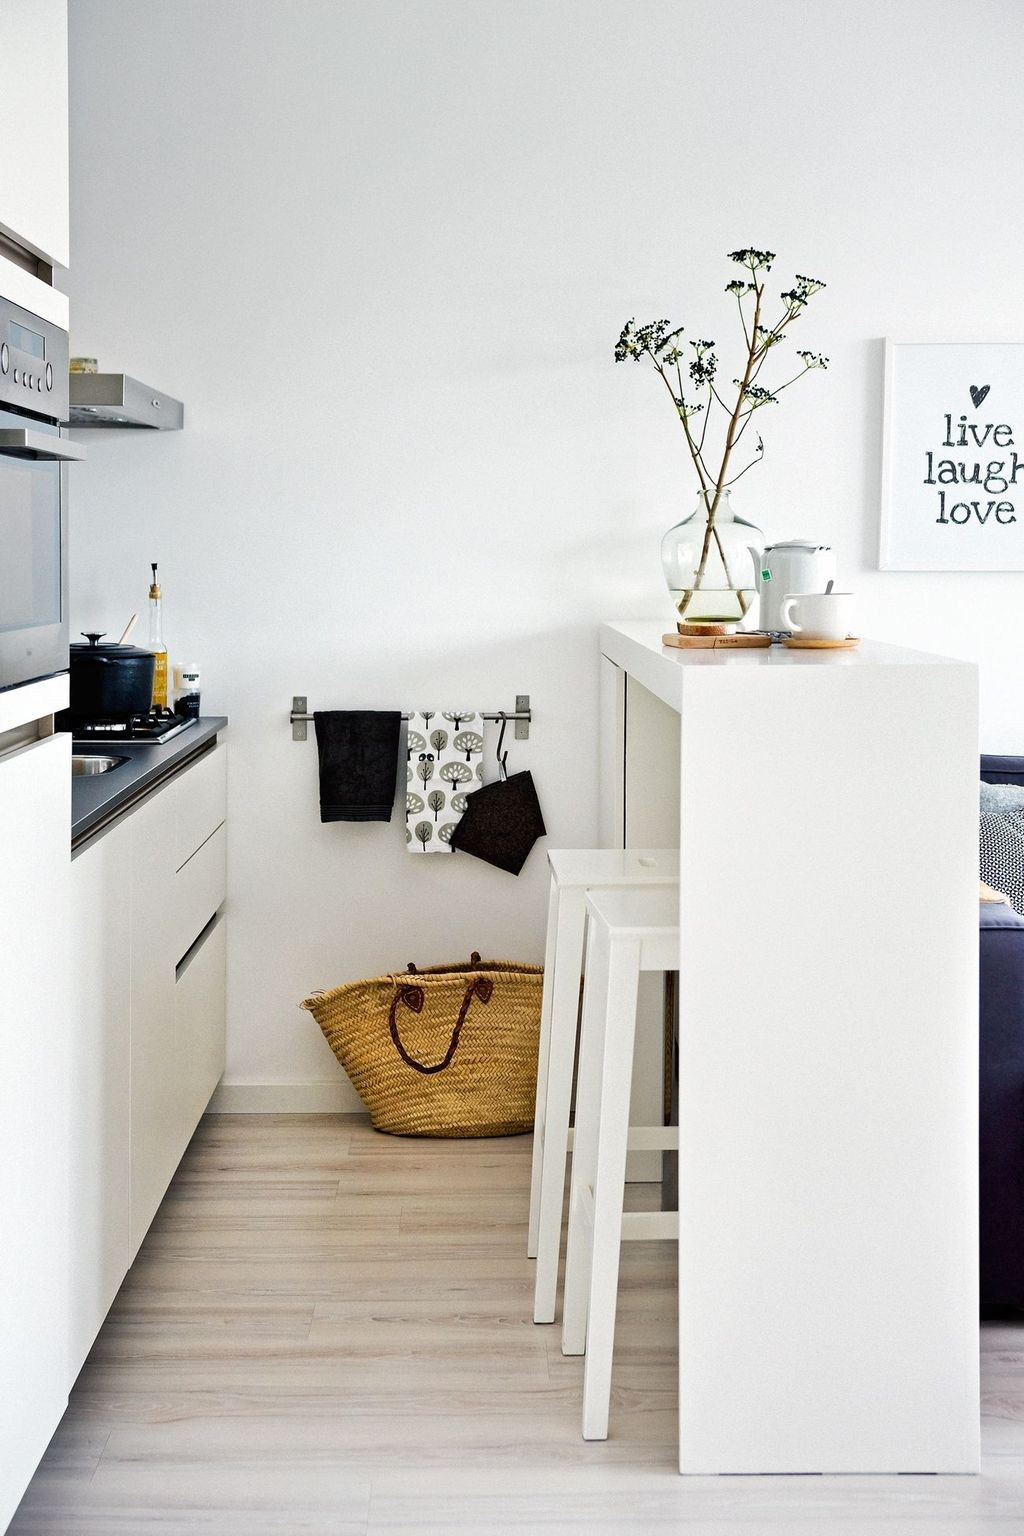 46 brilliant small apartment decor and design ideas garage remodel rh pinterest com